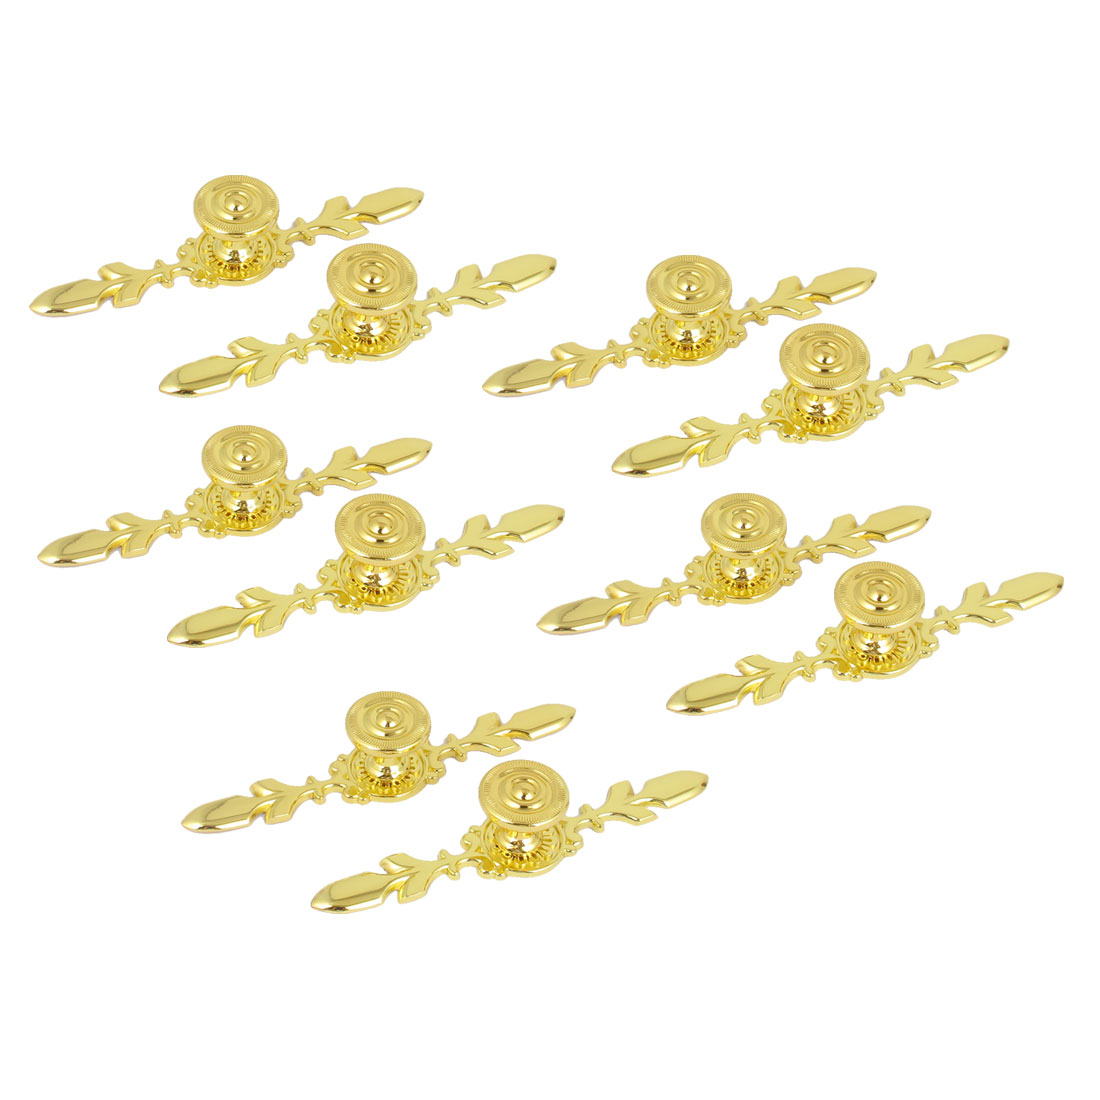 Furniture Cabinet Drawer Closet Door Zinc Alloy Pull Handle Grip Gold Tone 10pcs